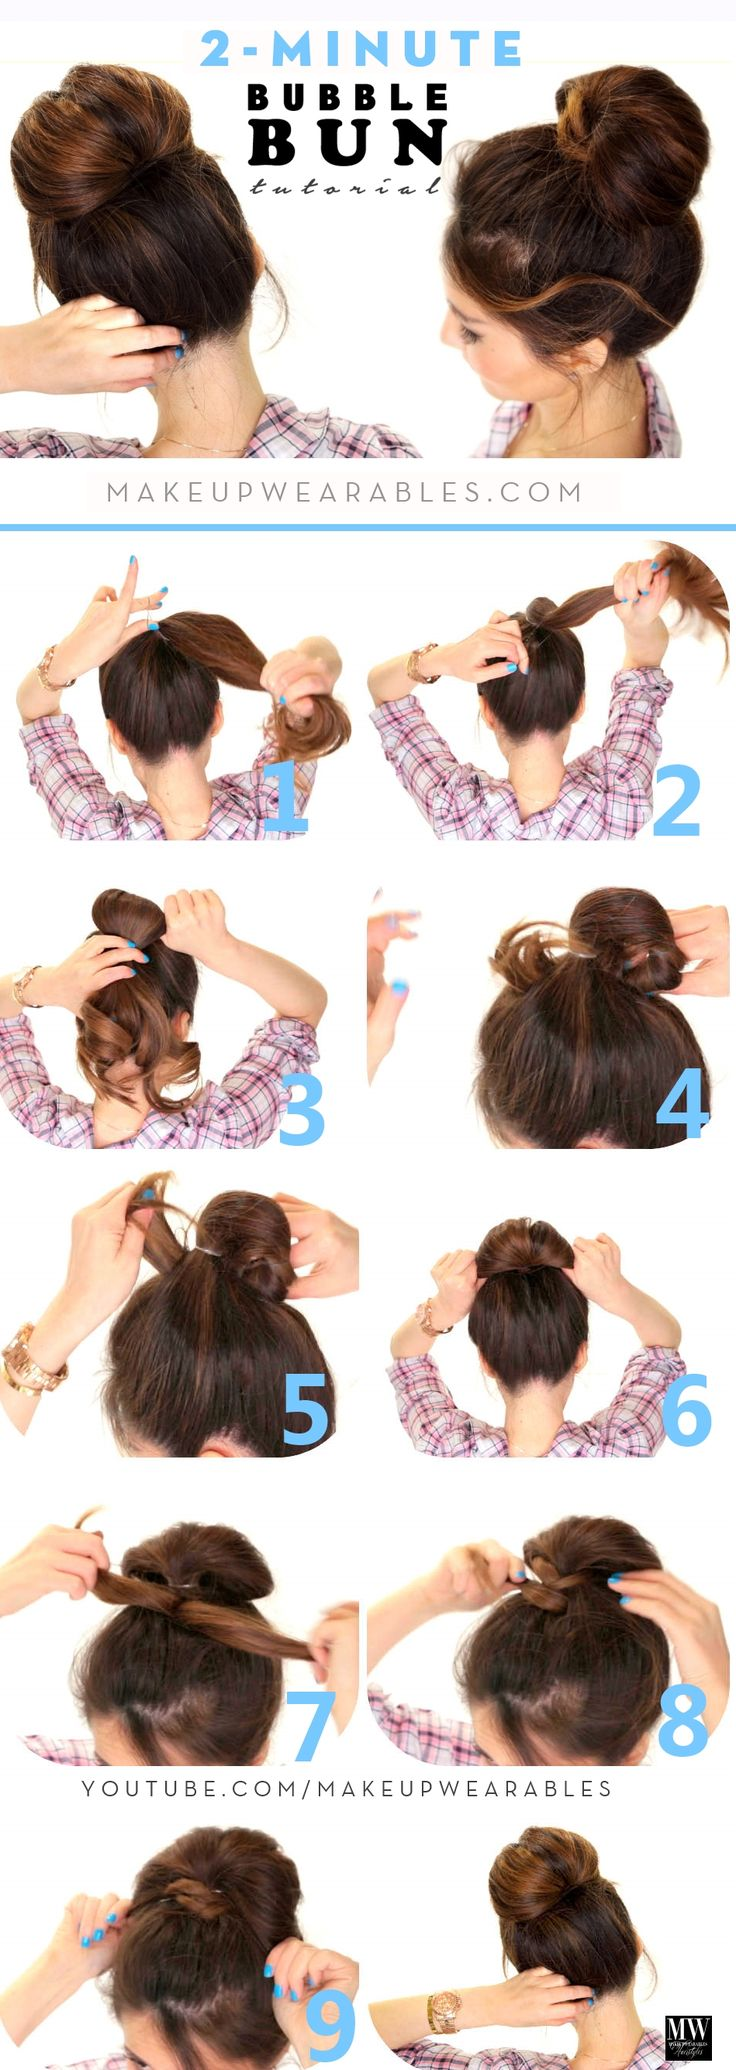 2-Minute Bubble Bun Hairstyle | Easy Hair Tutorial Video